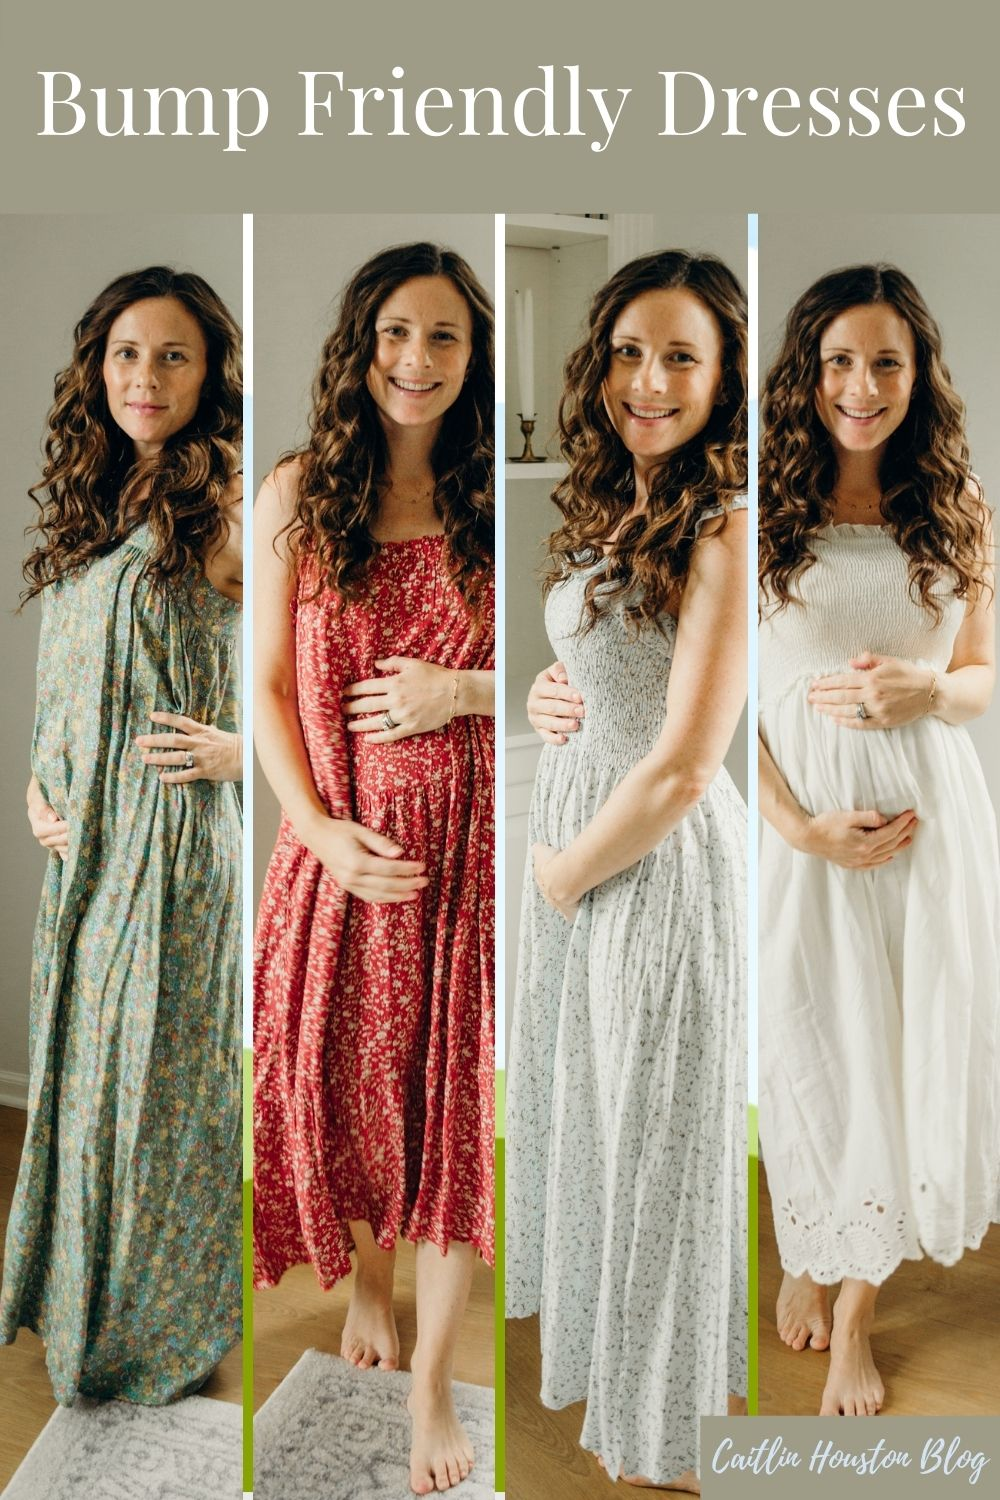 Bump Friendly Dresses by Natural Life on Caitlin Houston Blog